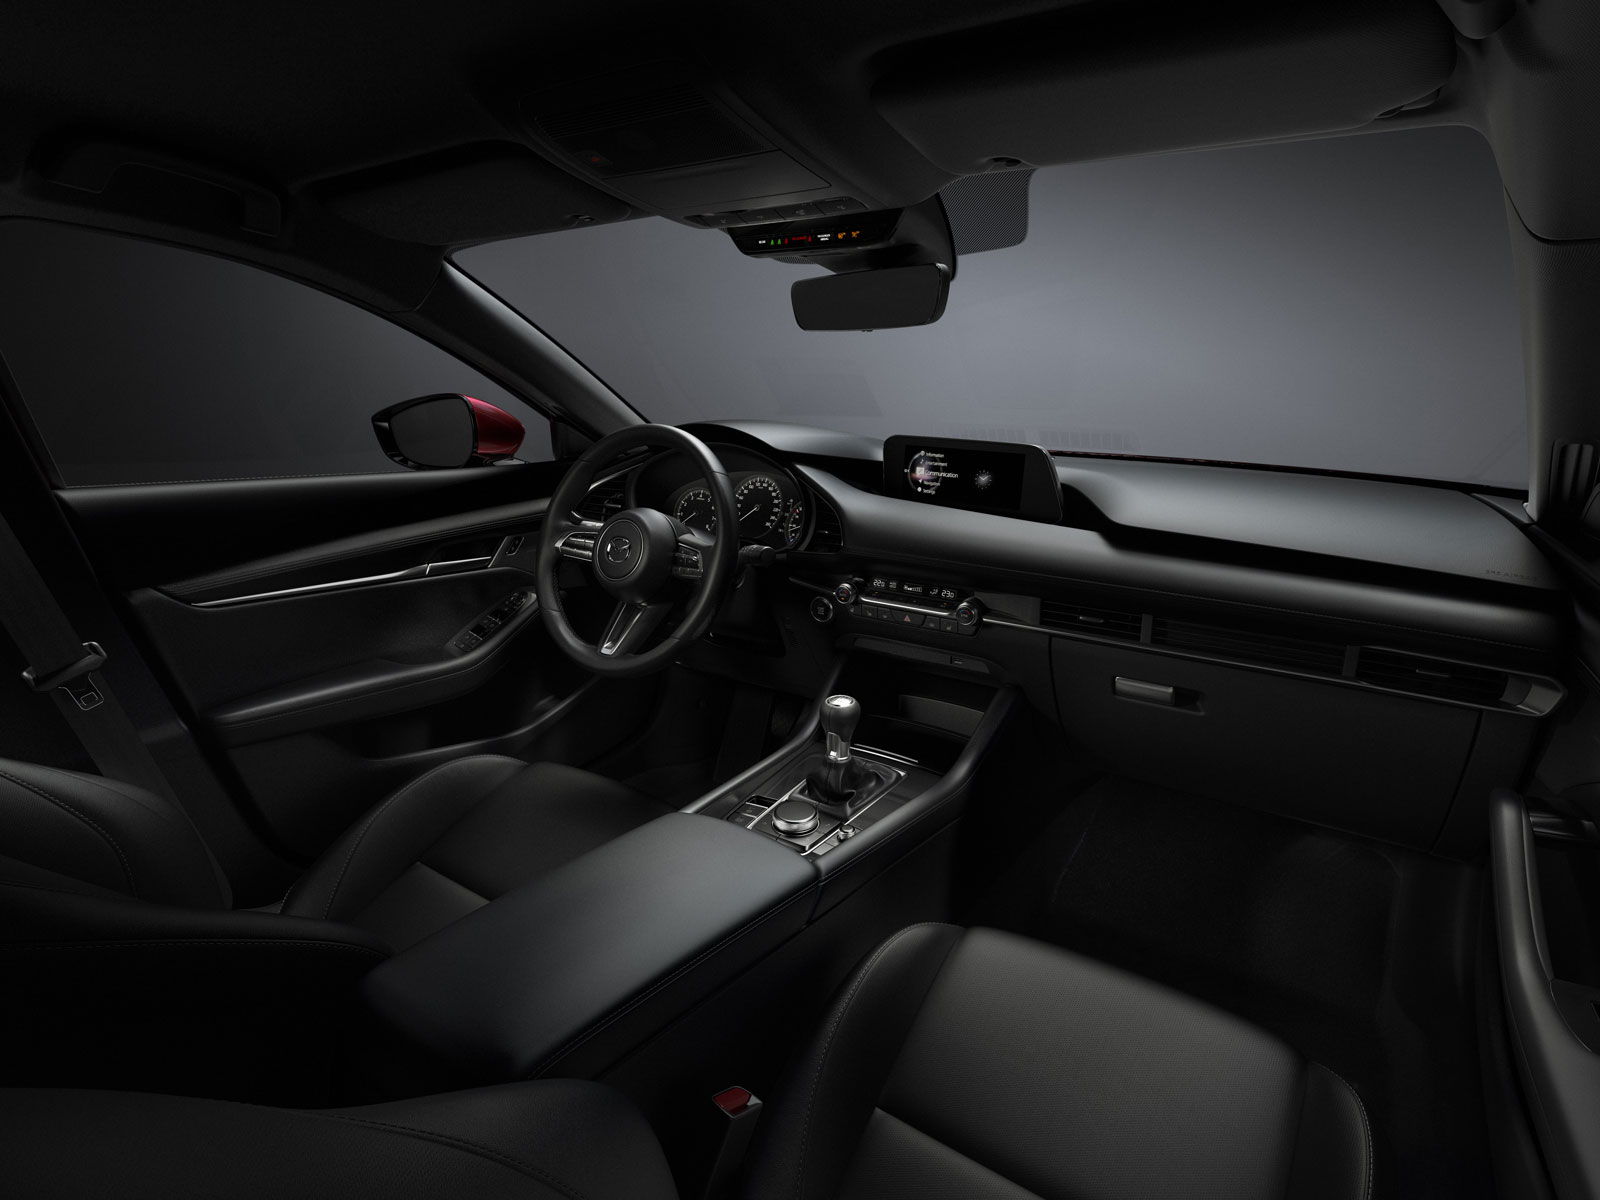 New Mazda3 Interior Design